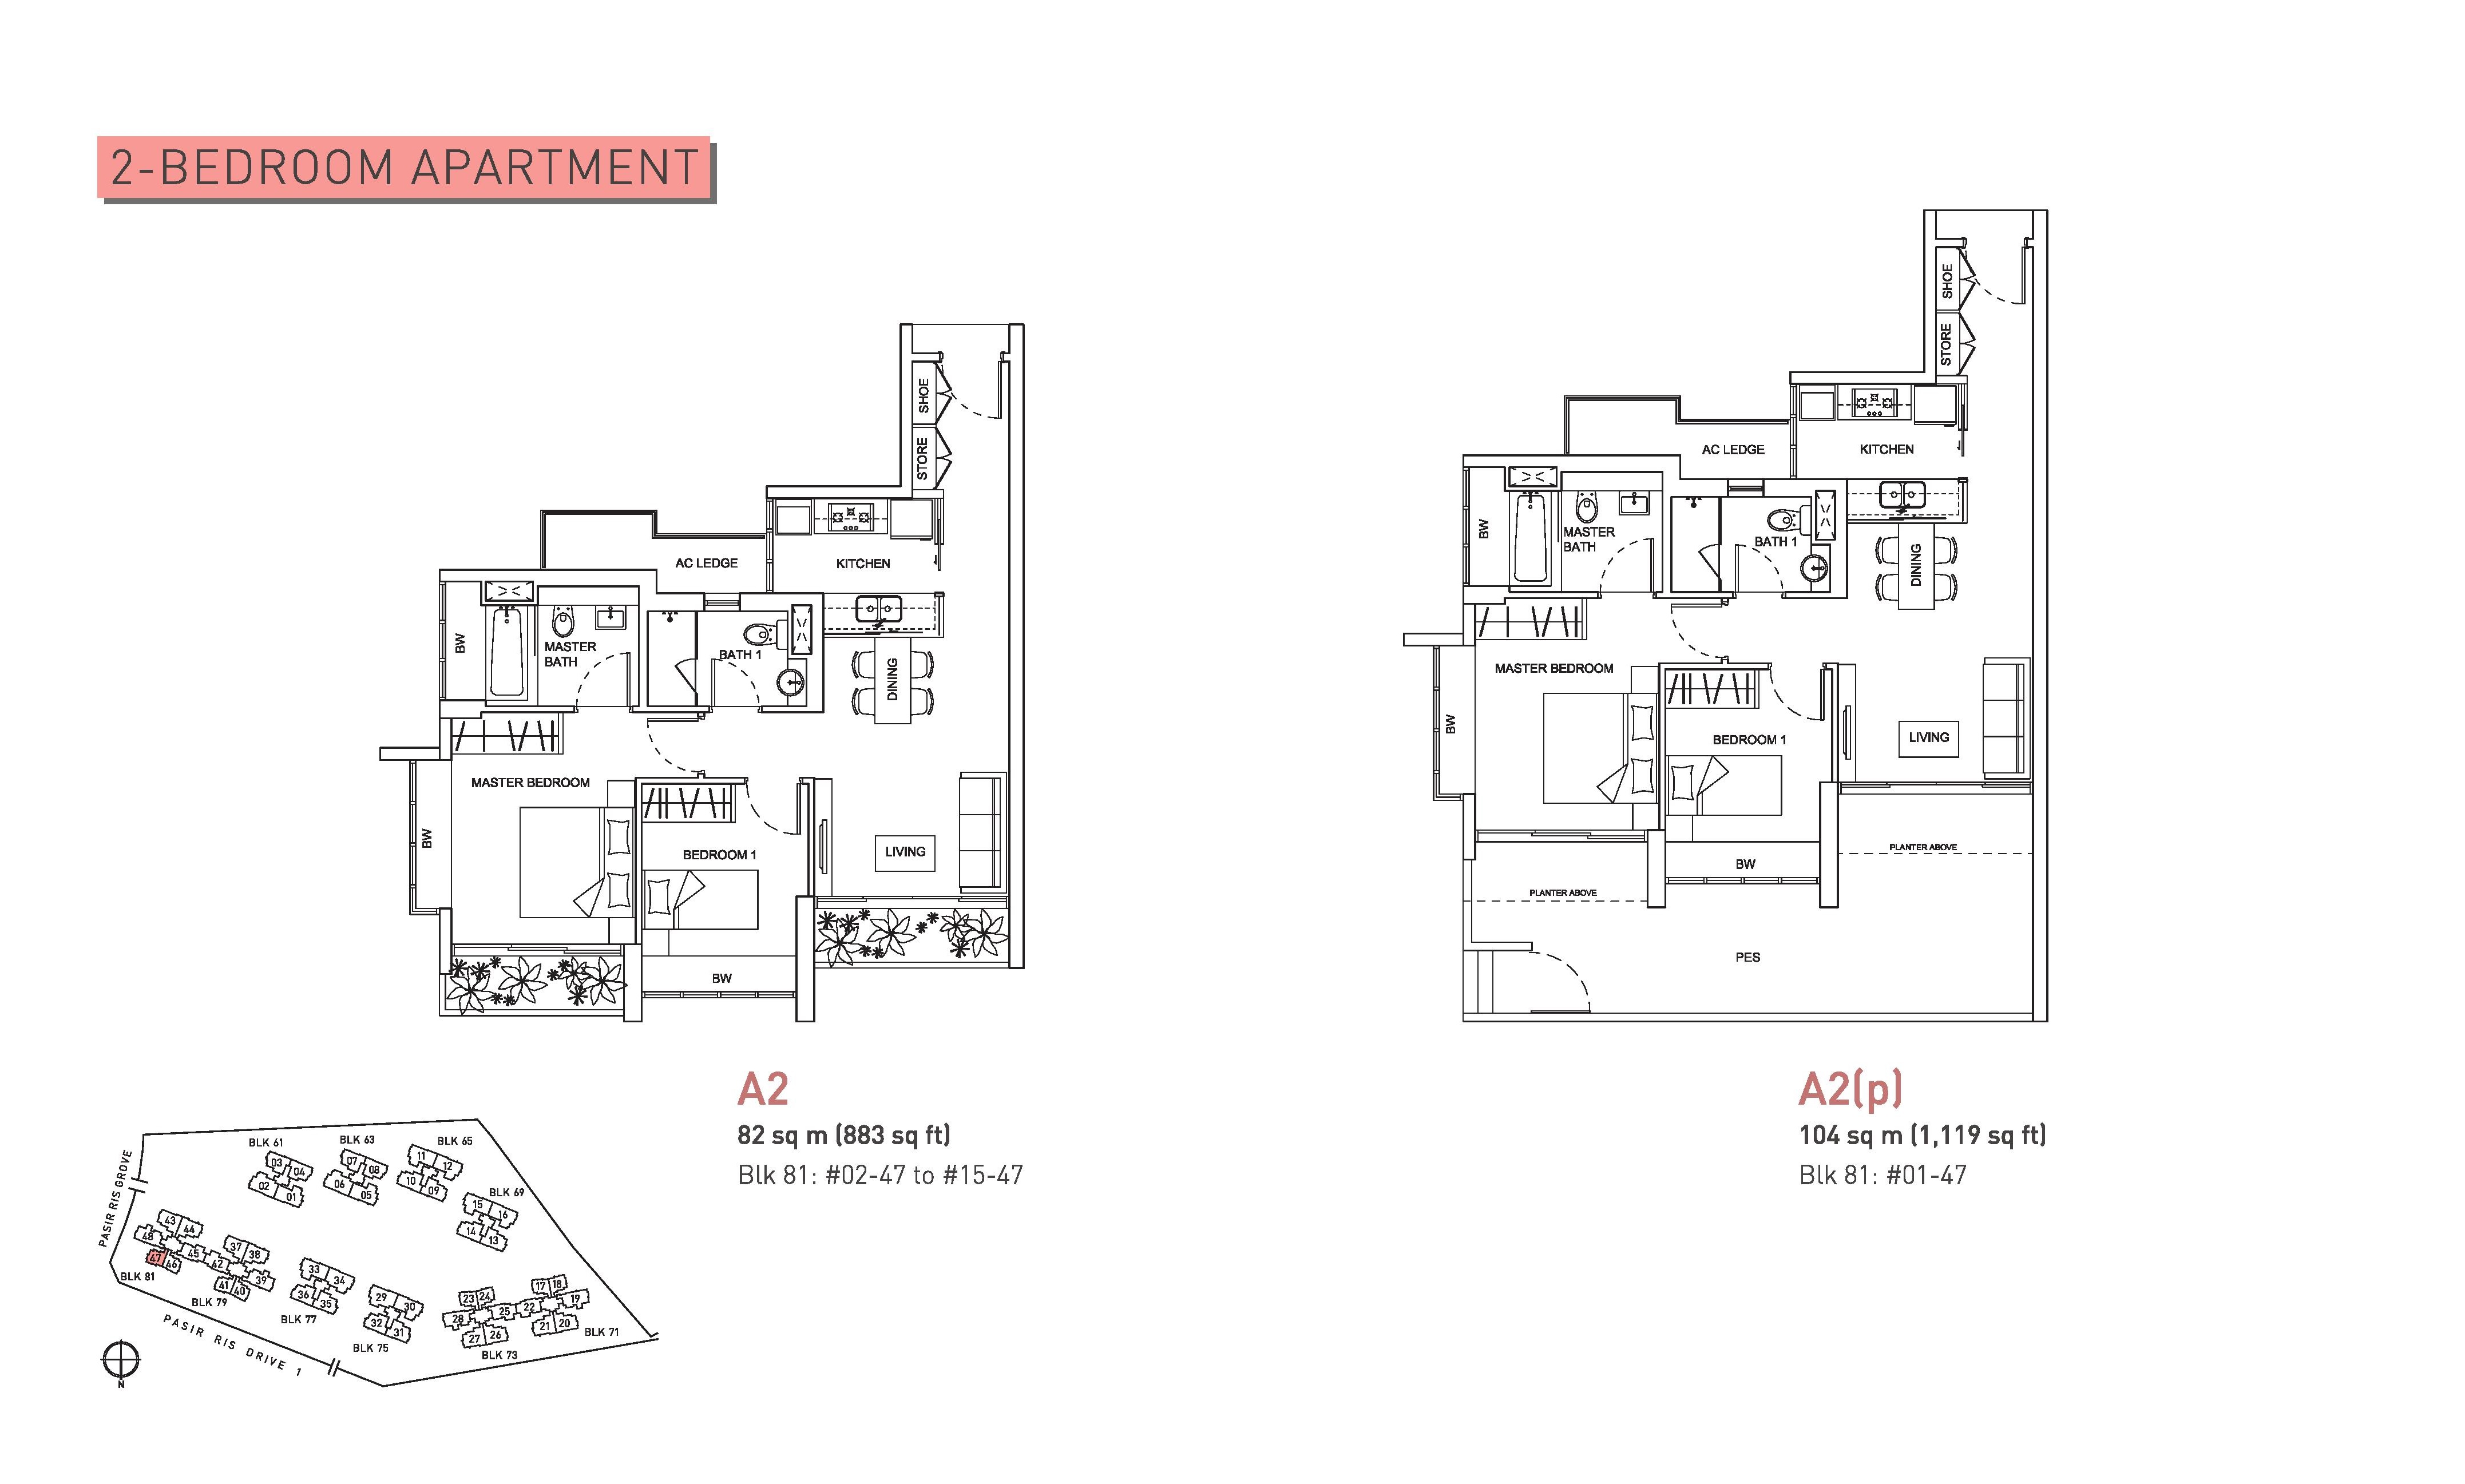 Livia 2 Bedroom Floor Plans Type A2 and A2(p)